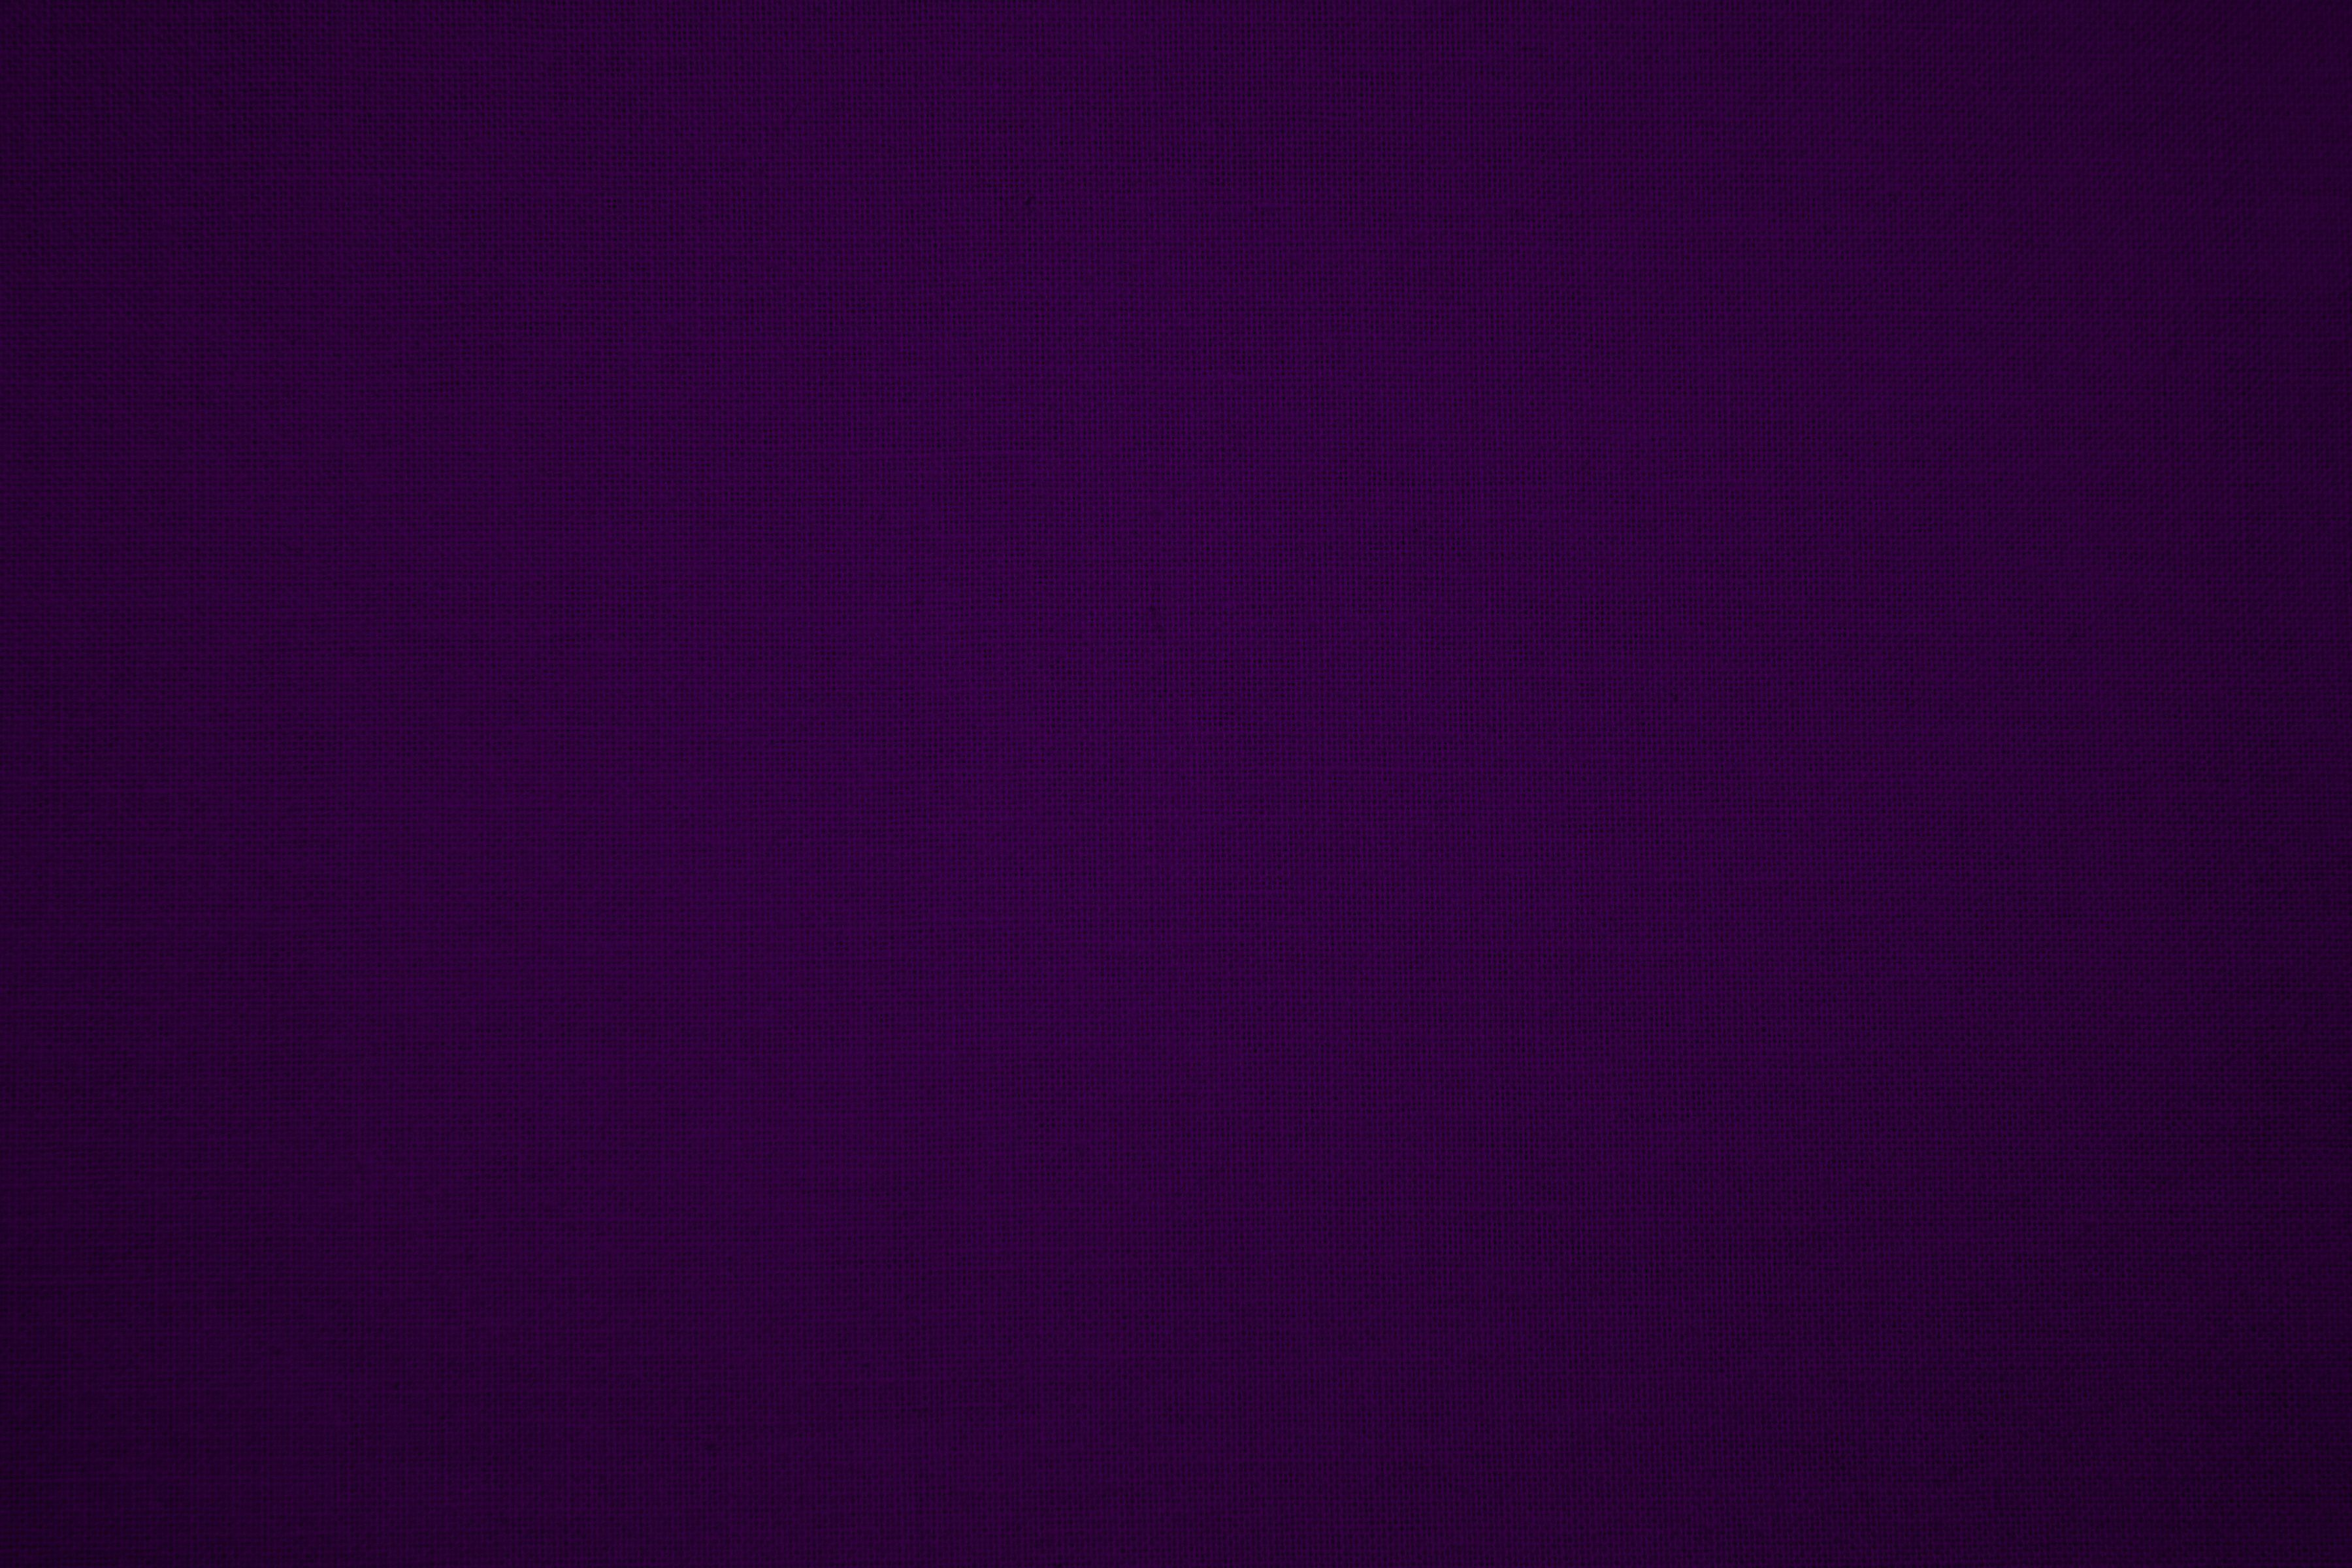 Dark purple wallpaper wallpapersafari for Dark purple wall color